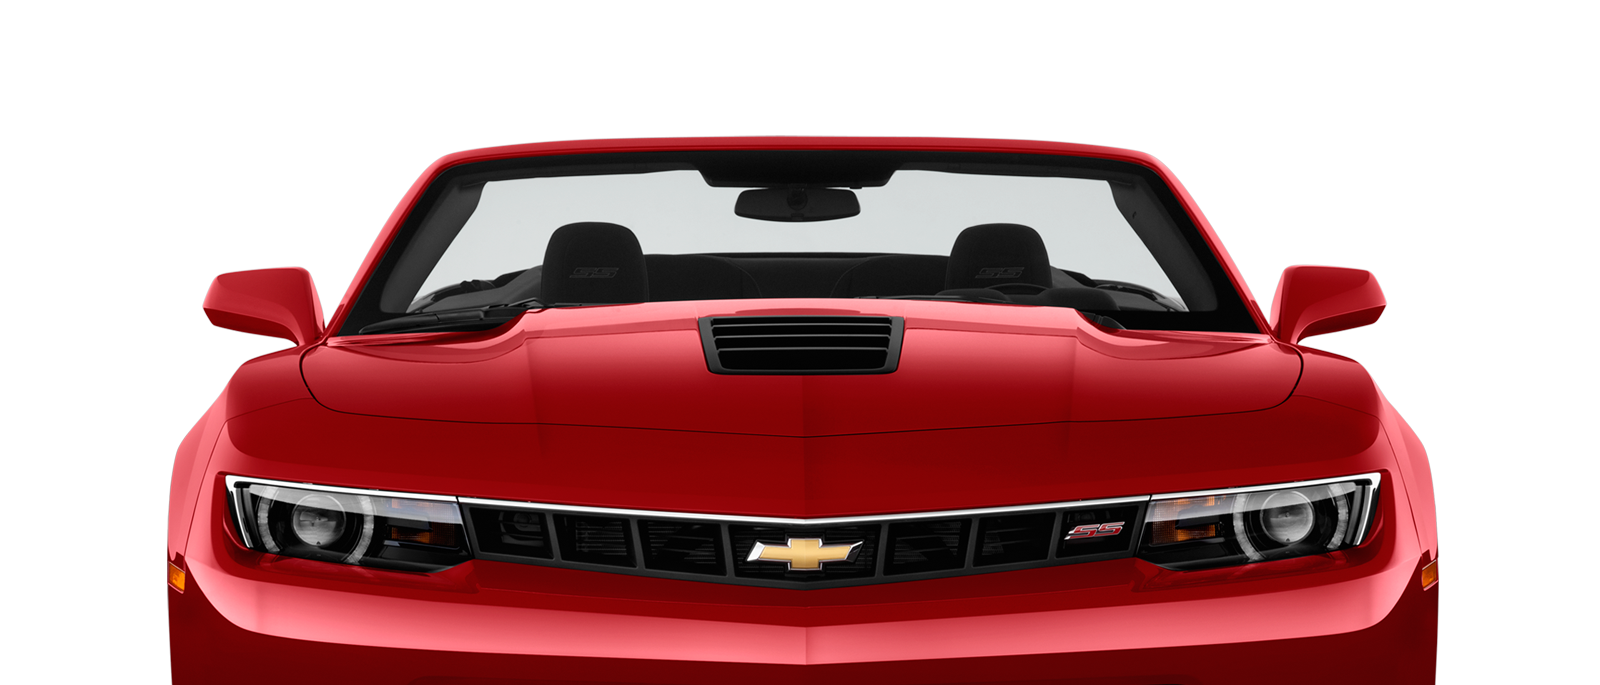 chevrolet camaro ss car rental exotic car collection by. Black Bedroom Furniture Sets. Home Design Ideas